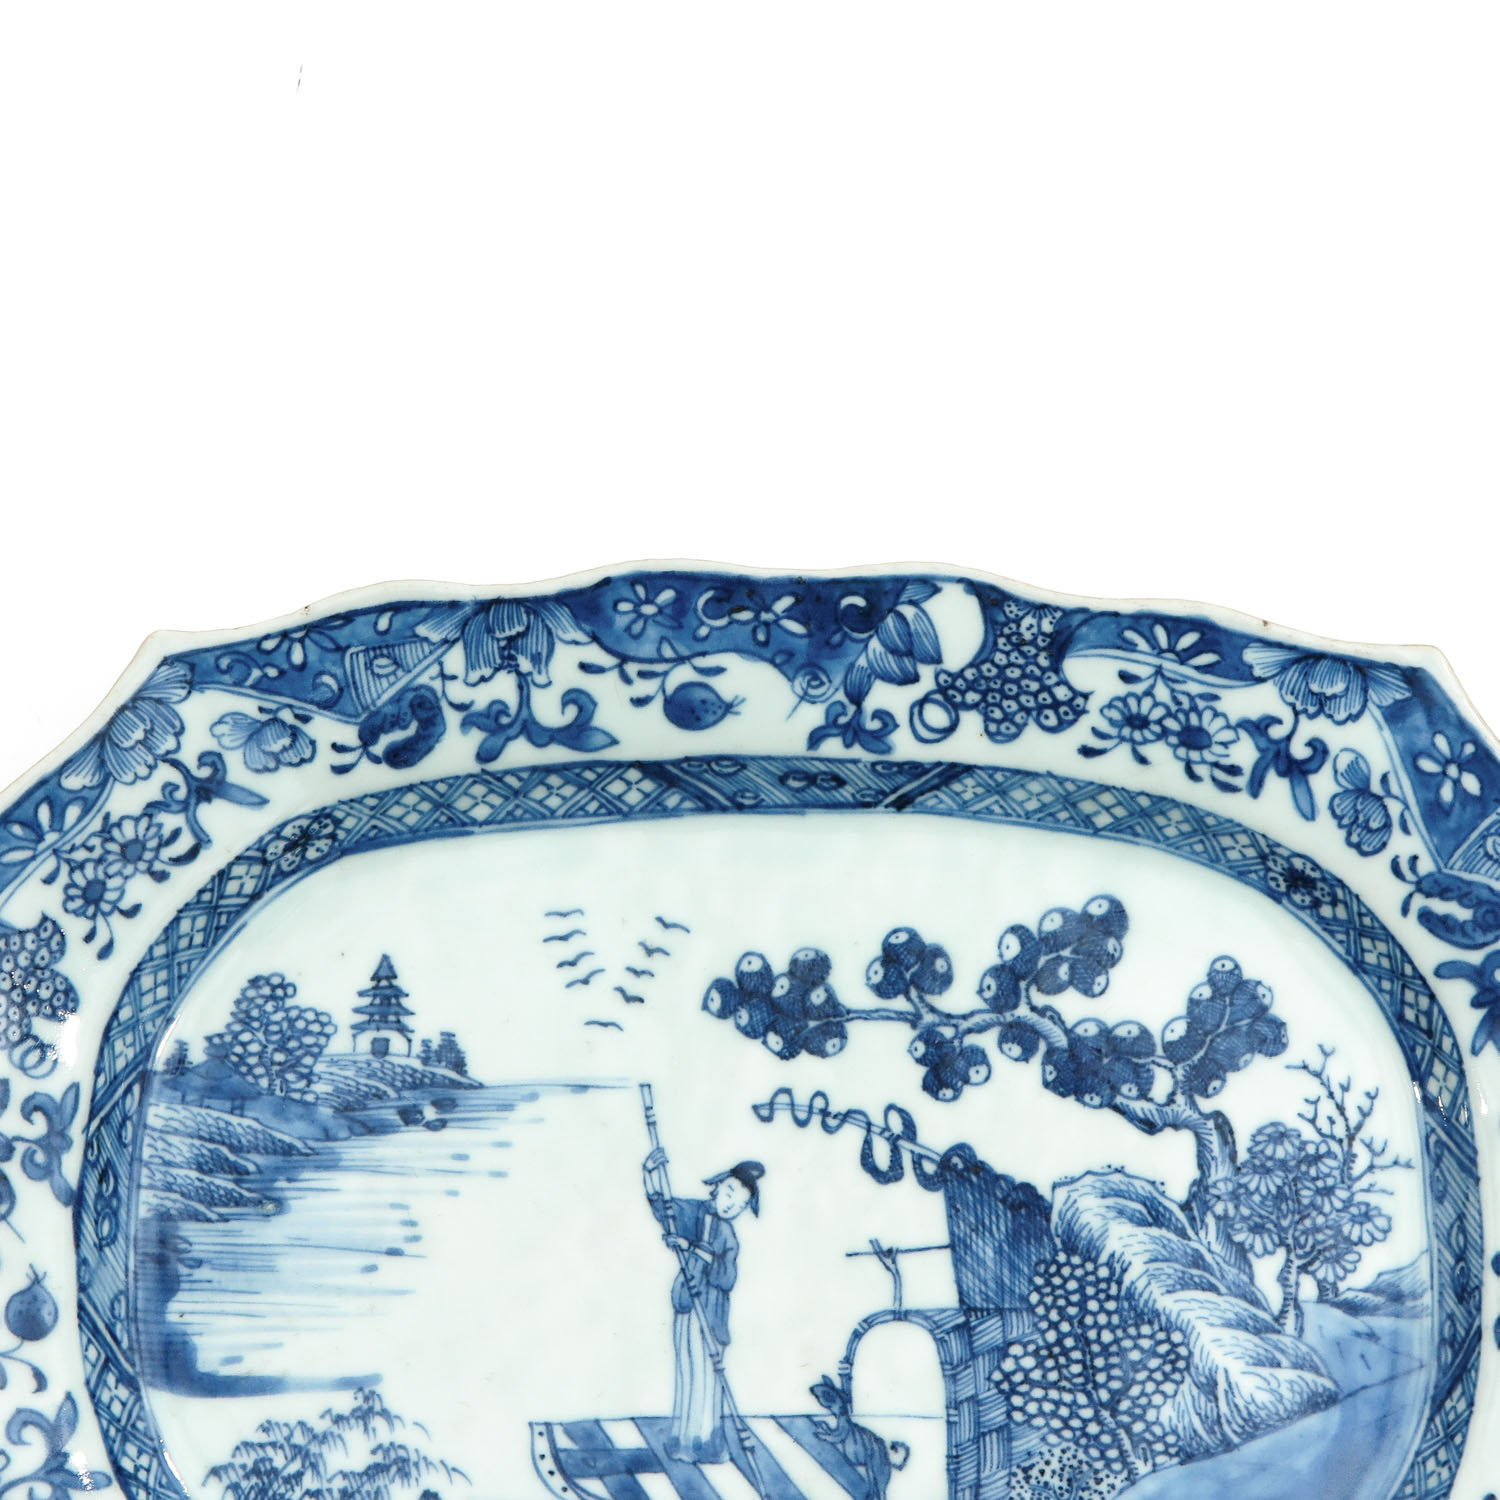 A Blue and White Serving Dish - Image 3 of 7